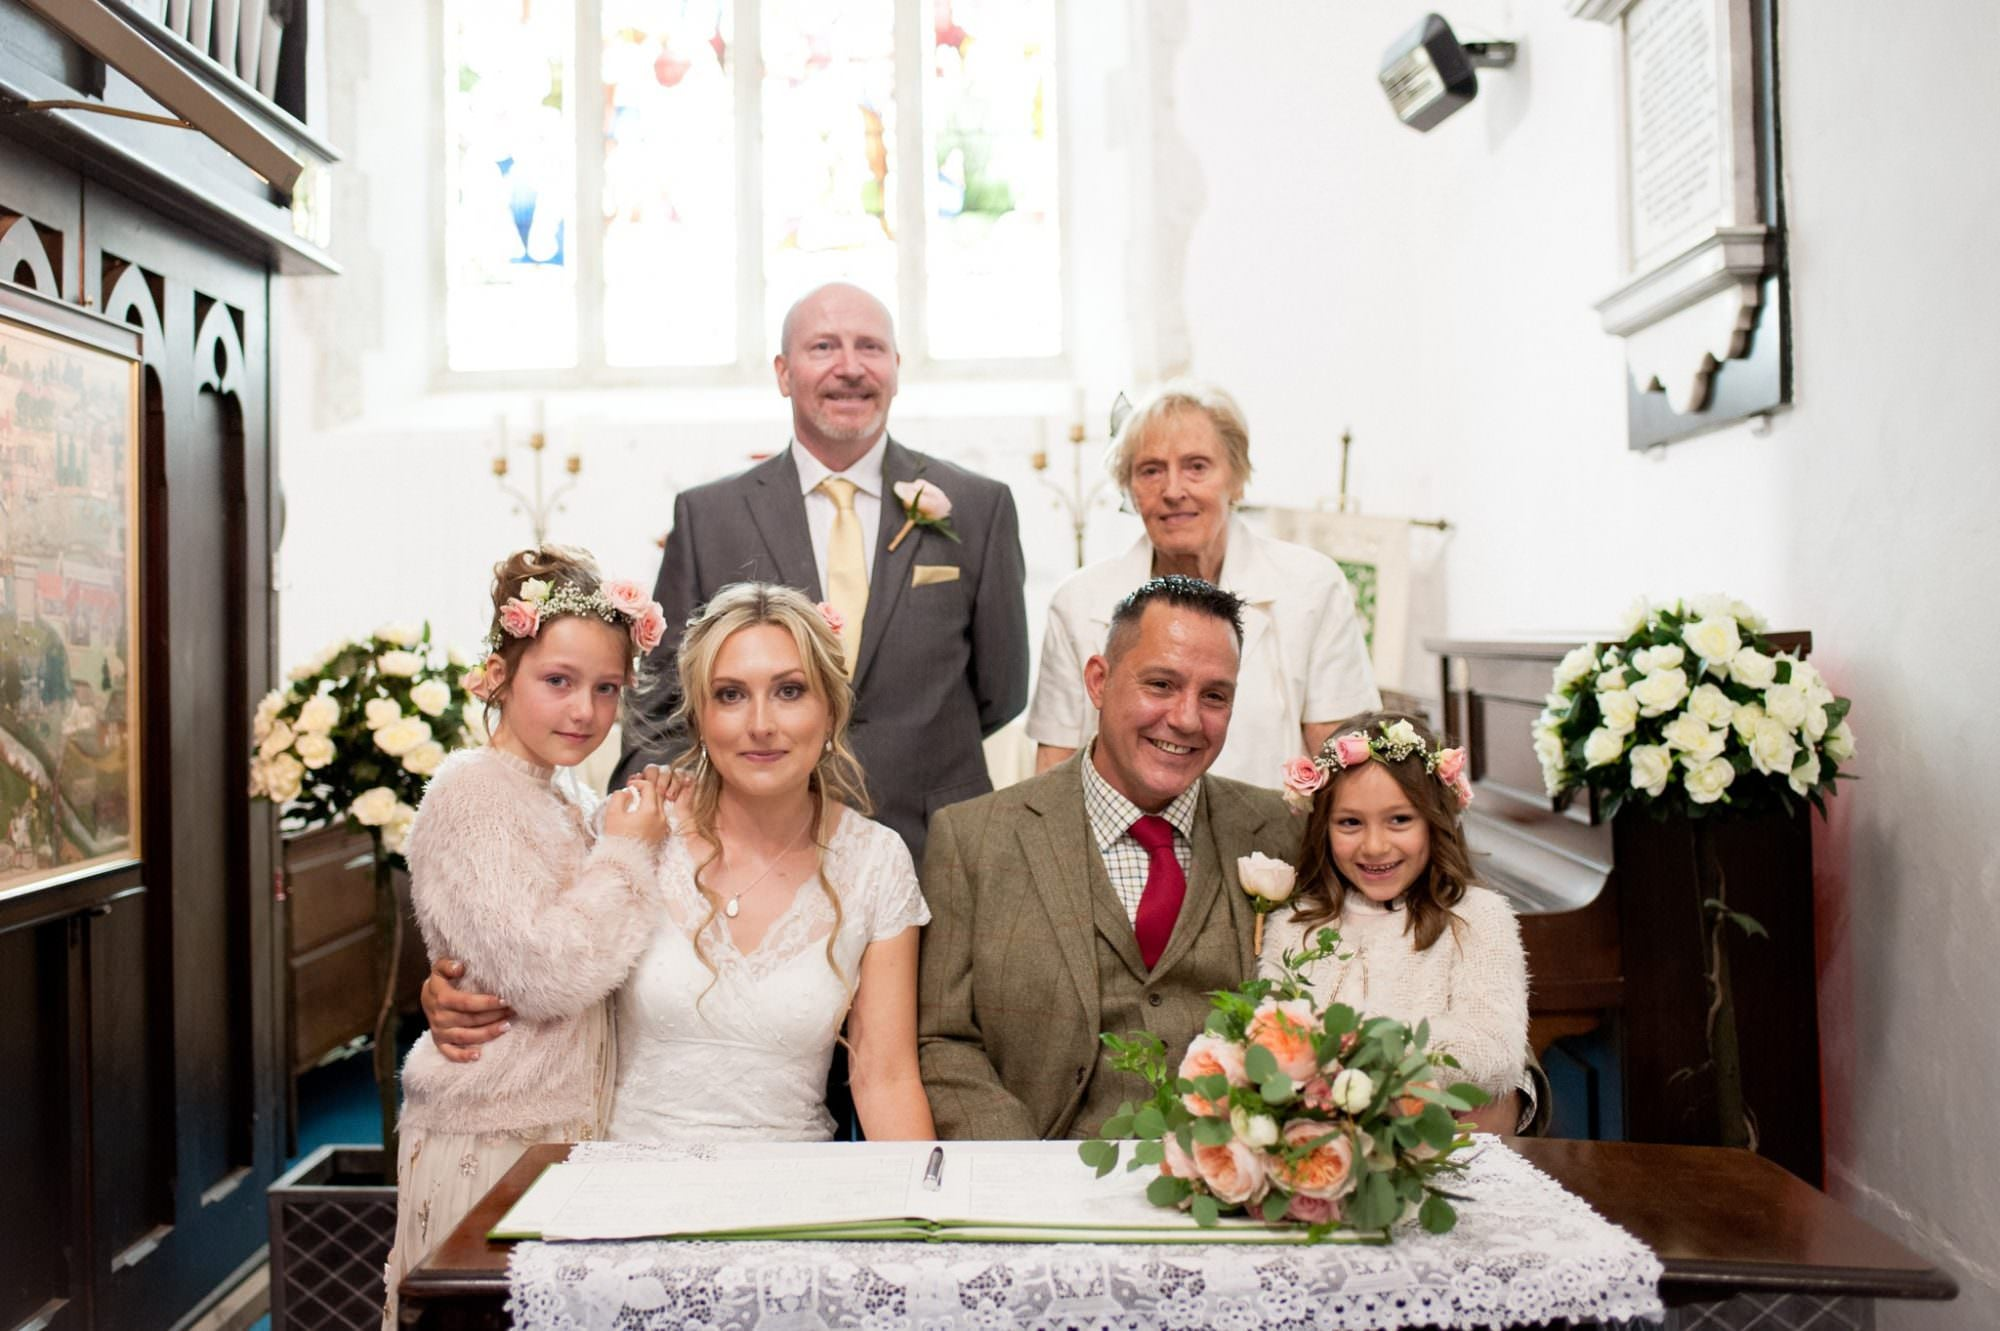 Family photograph at Sopley Church